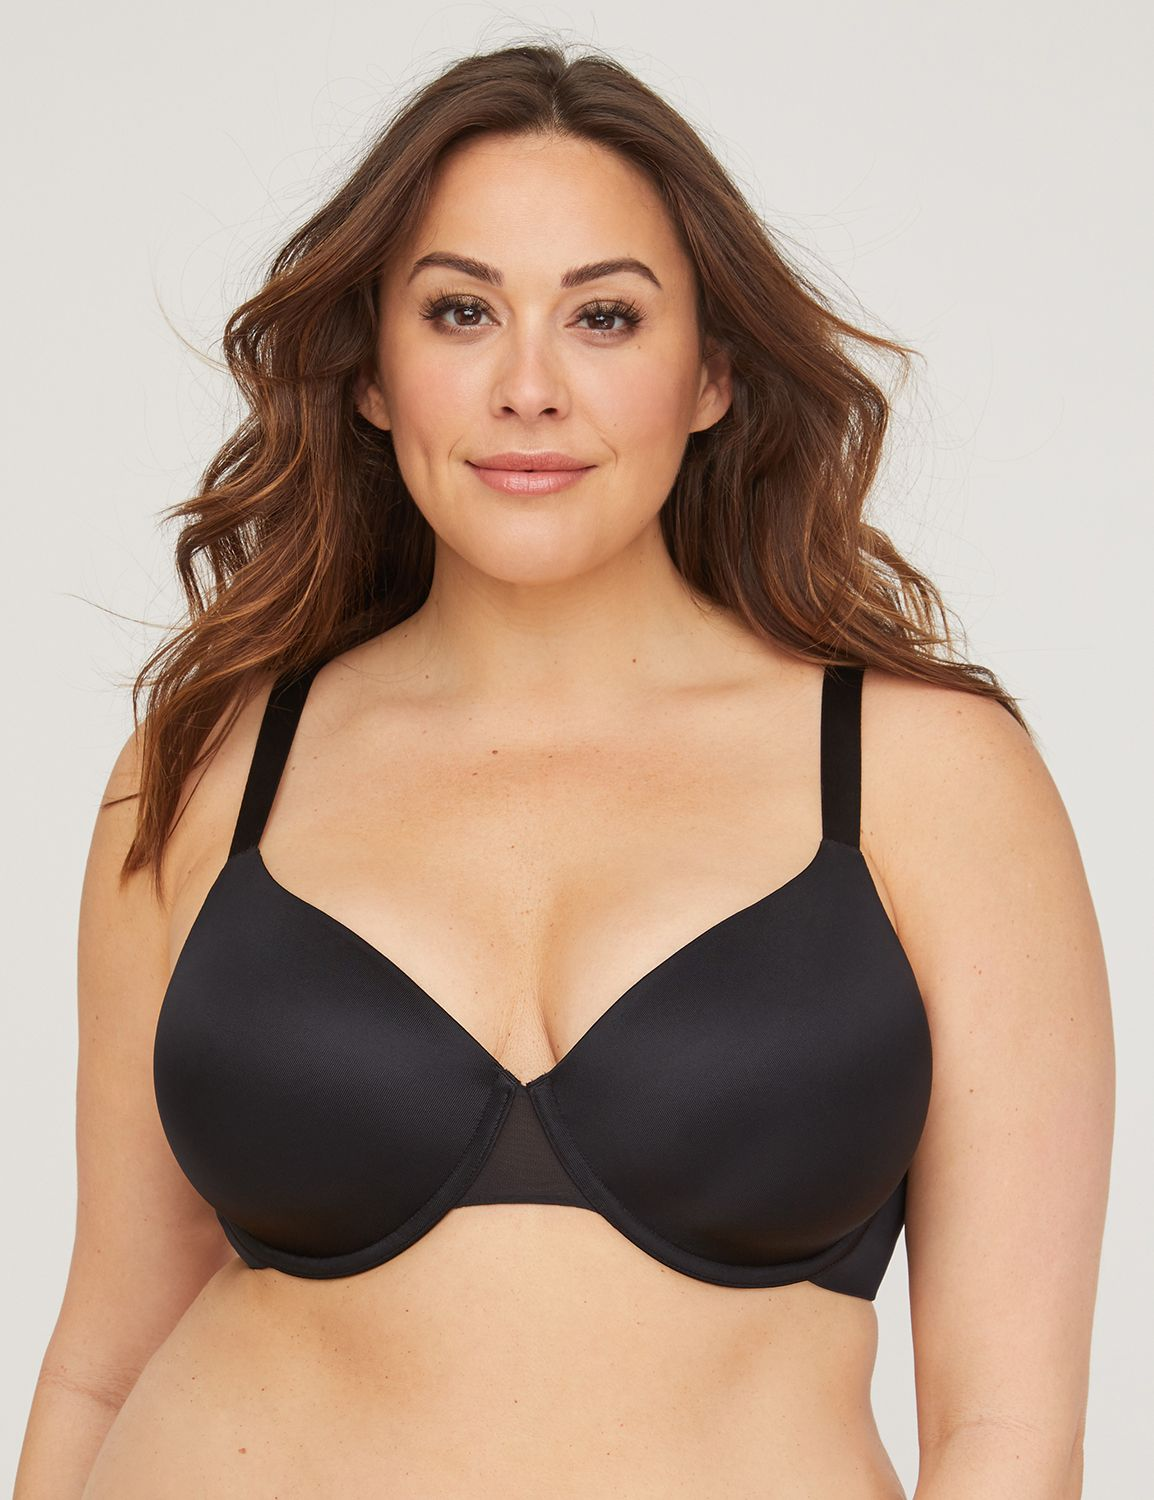 Underwire Perfect Fit T-Shirt Bra Underwire Perfect Fit T-Shirt Bra MP-300043259